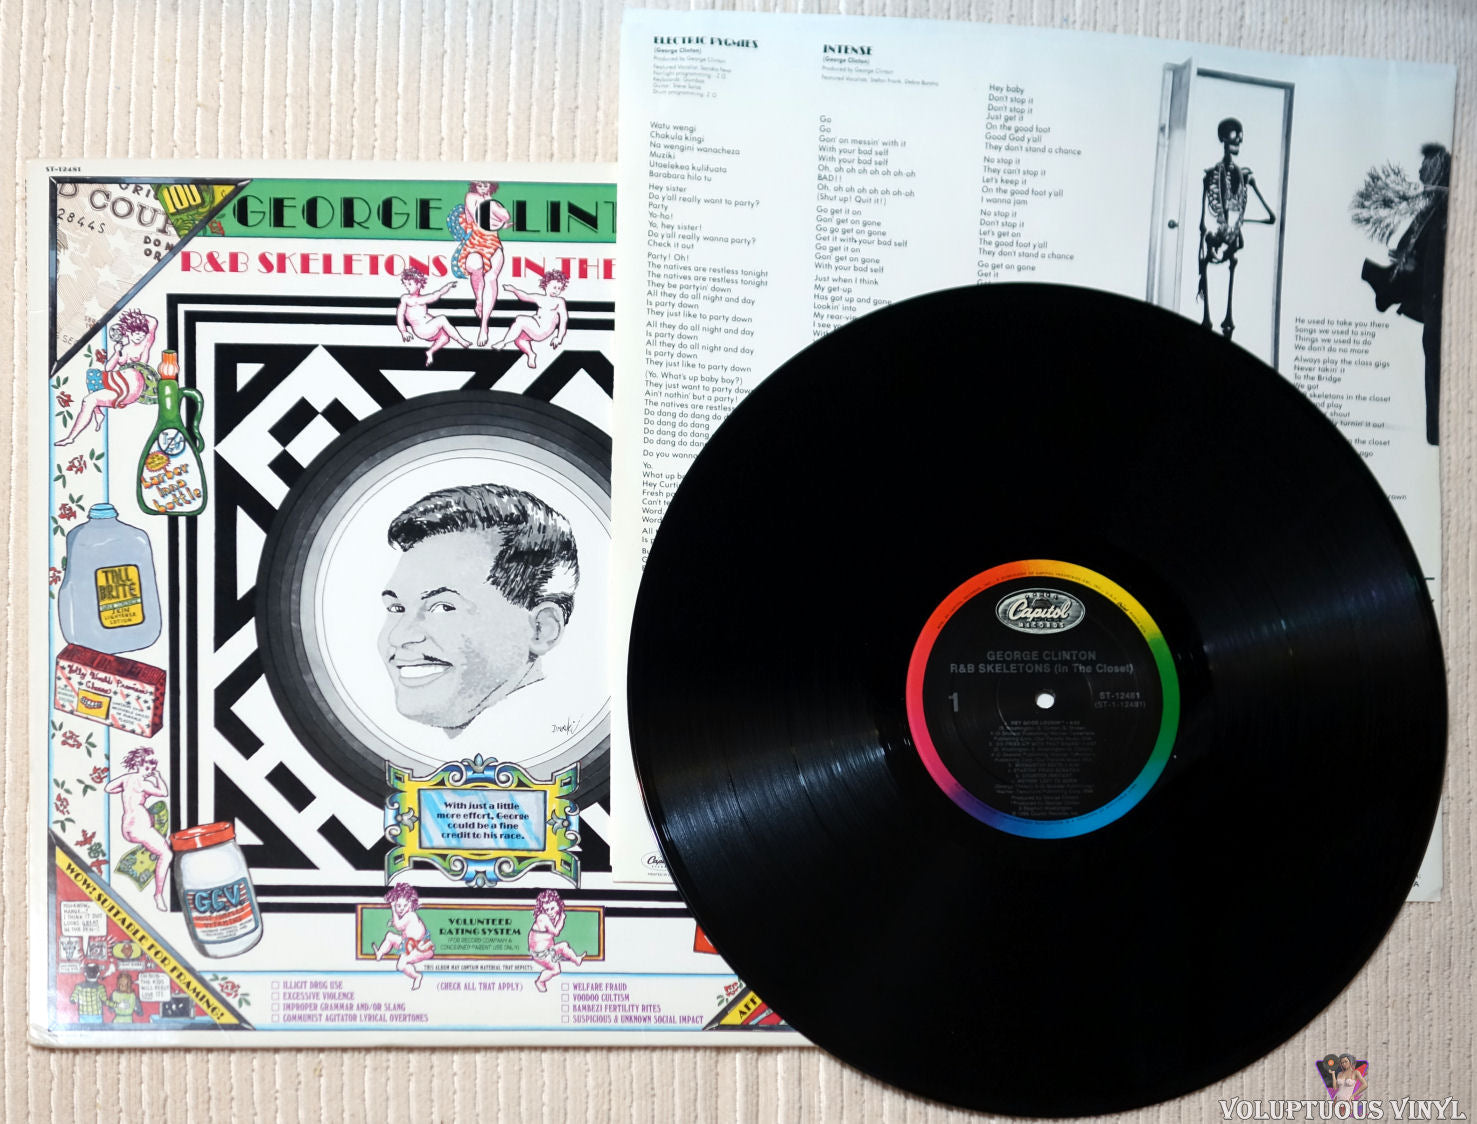 George Clinton R B Skeletons In The Closet 1986